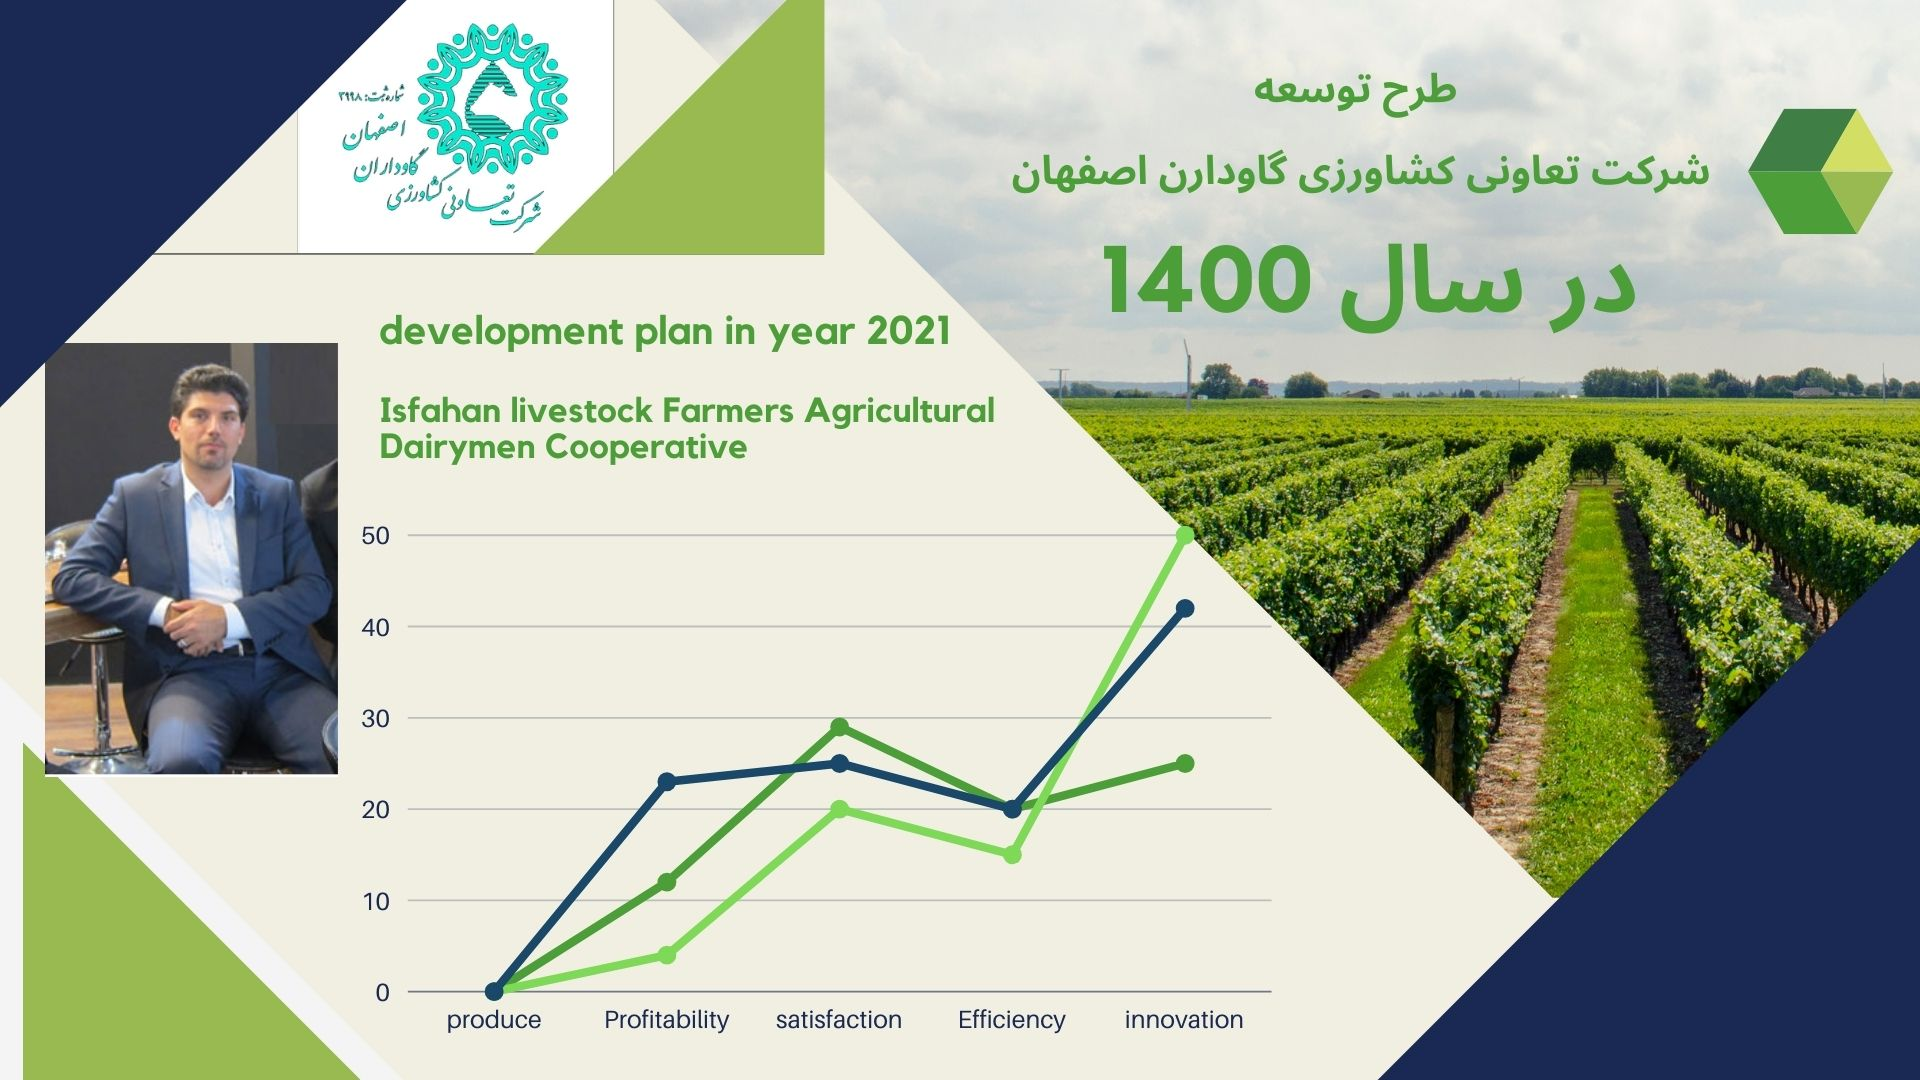 transparency of the company's development plan